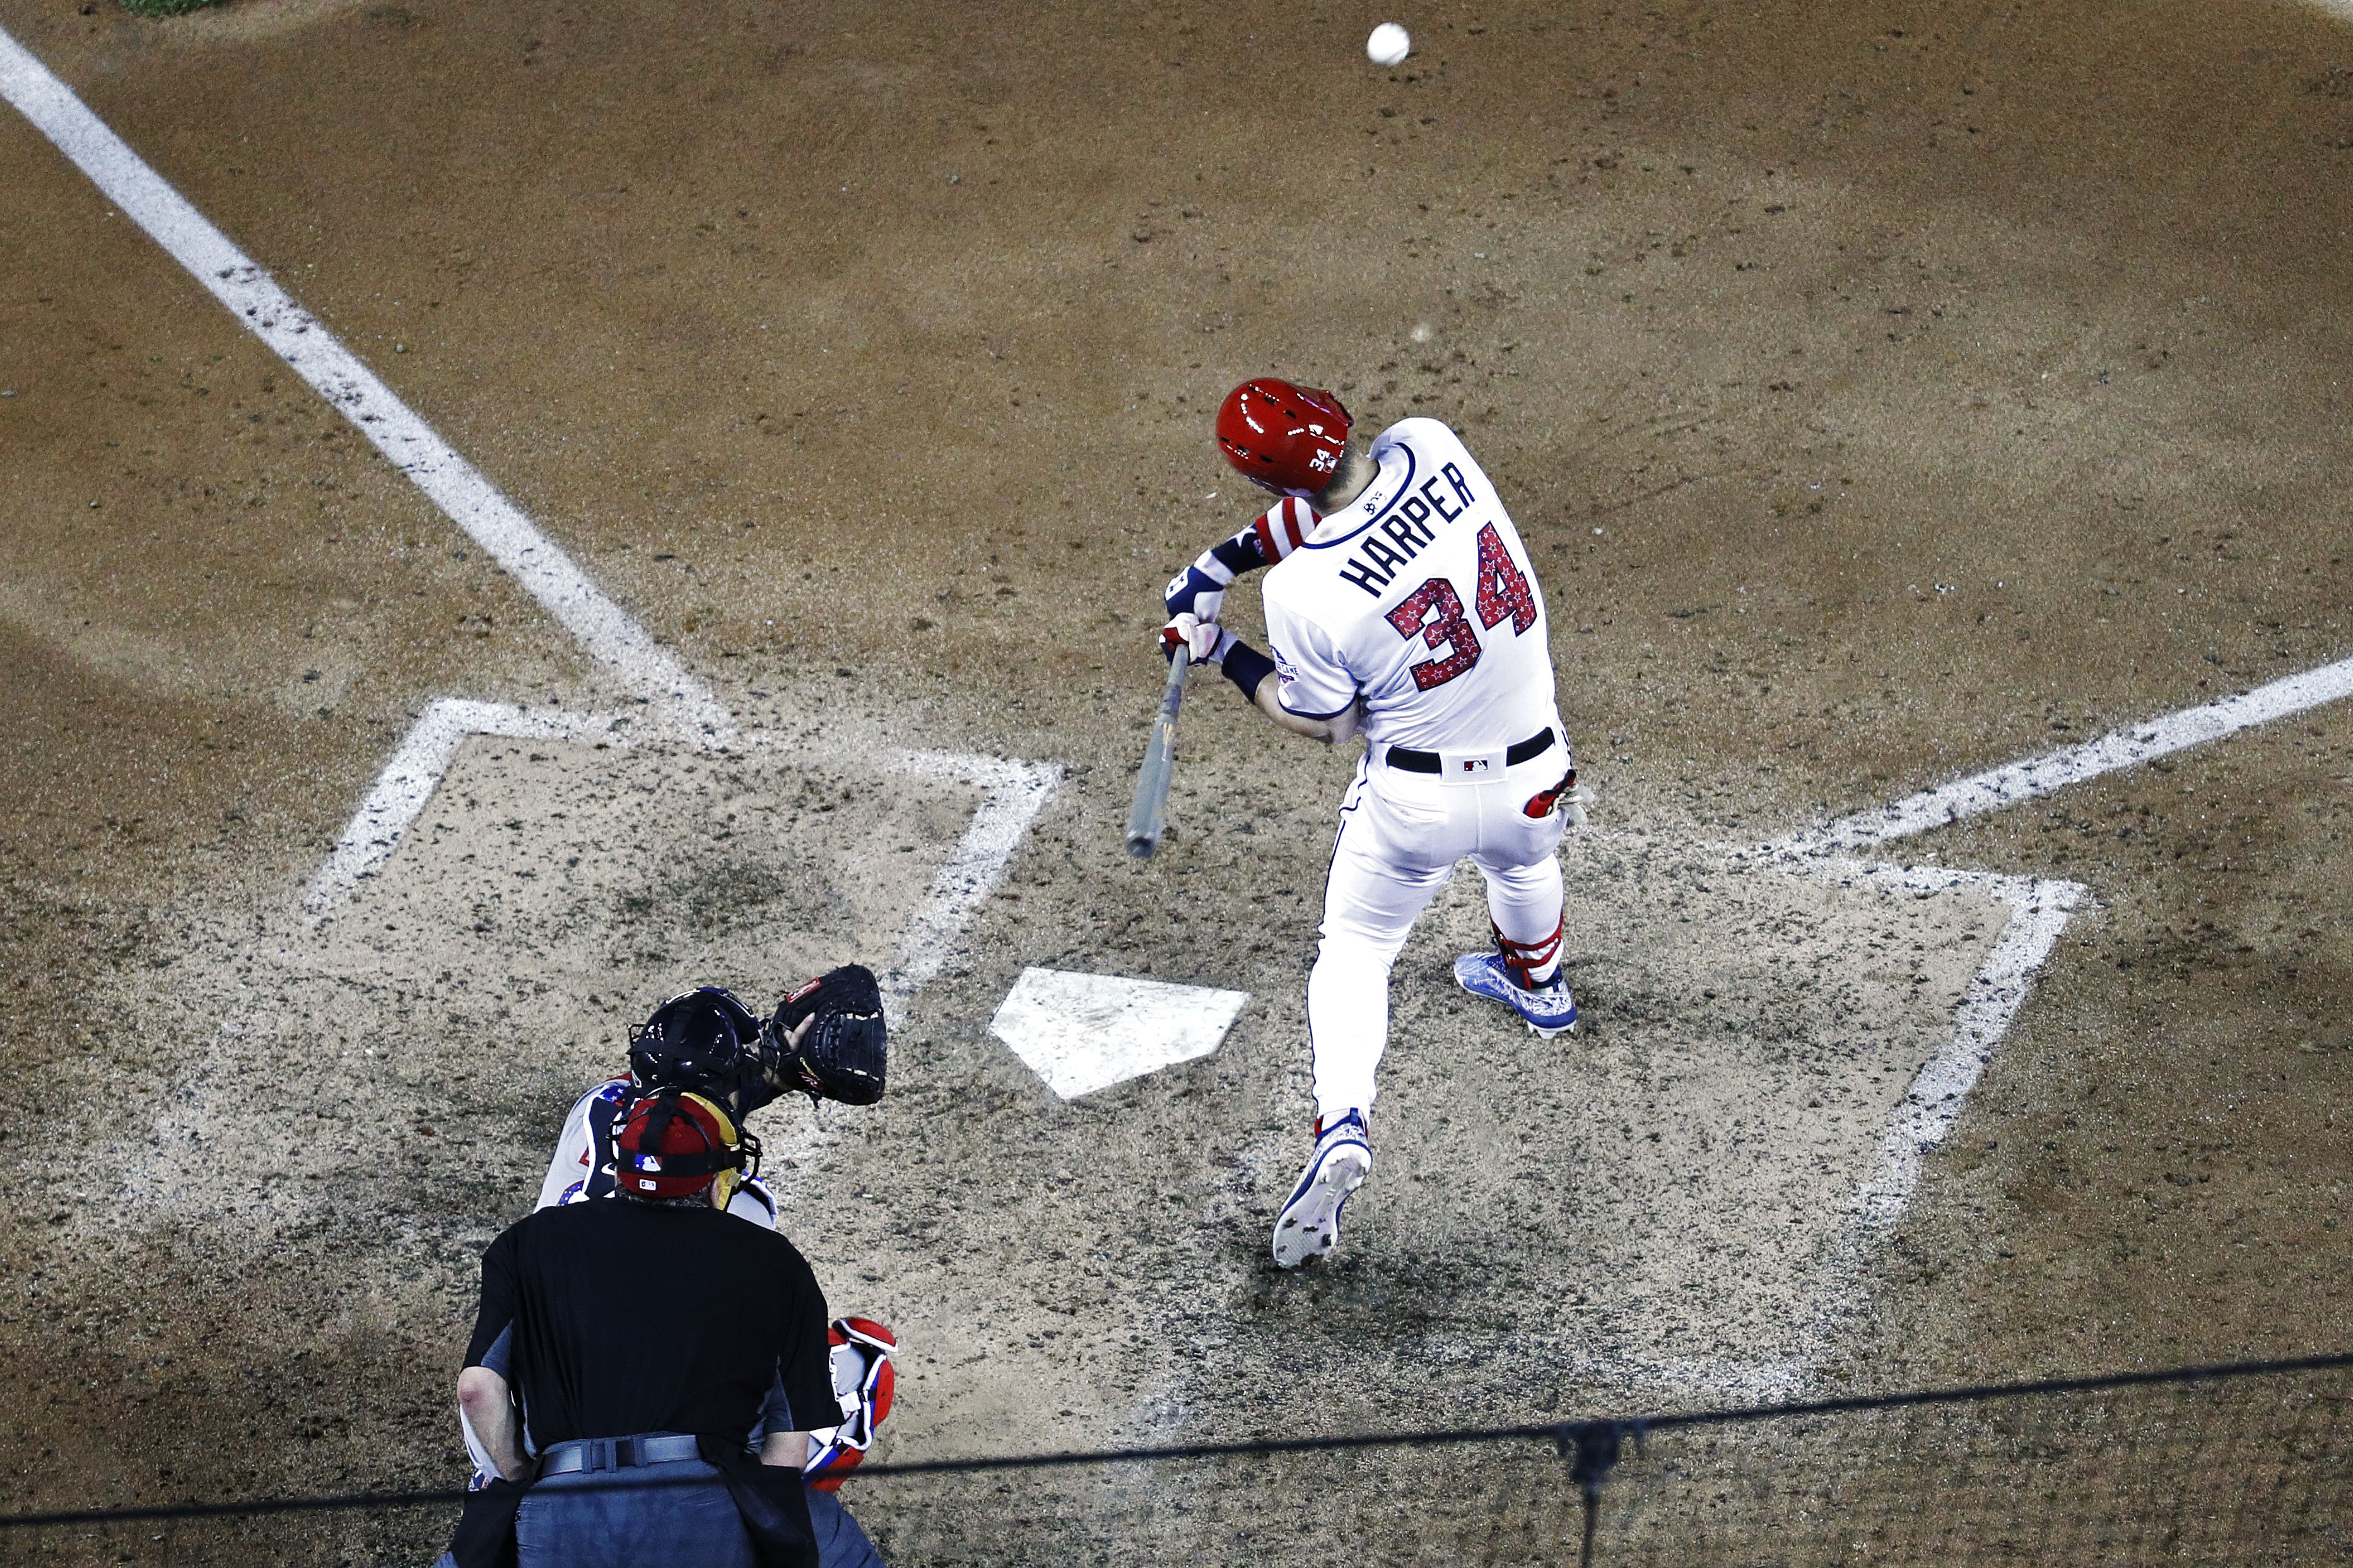 Jul 2, 2018; Washington, DC, USA; Washington Nationals right fielder Bryce Harper (34) hits a solo home run against the Boston Red Sox in the eighth inning at Nationals Park. Mandatory Credit: Geoff Burke-USA TODAY Sports